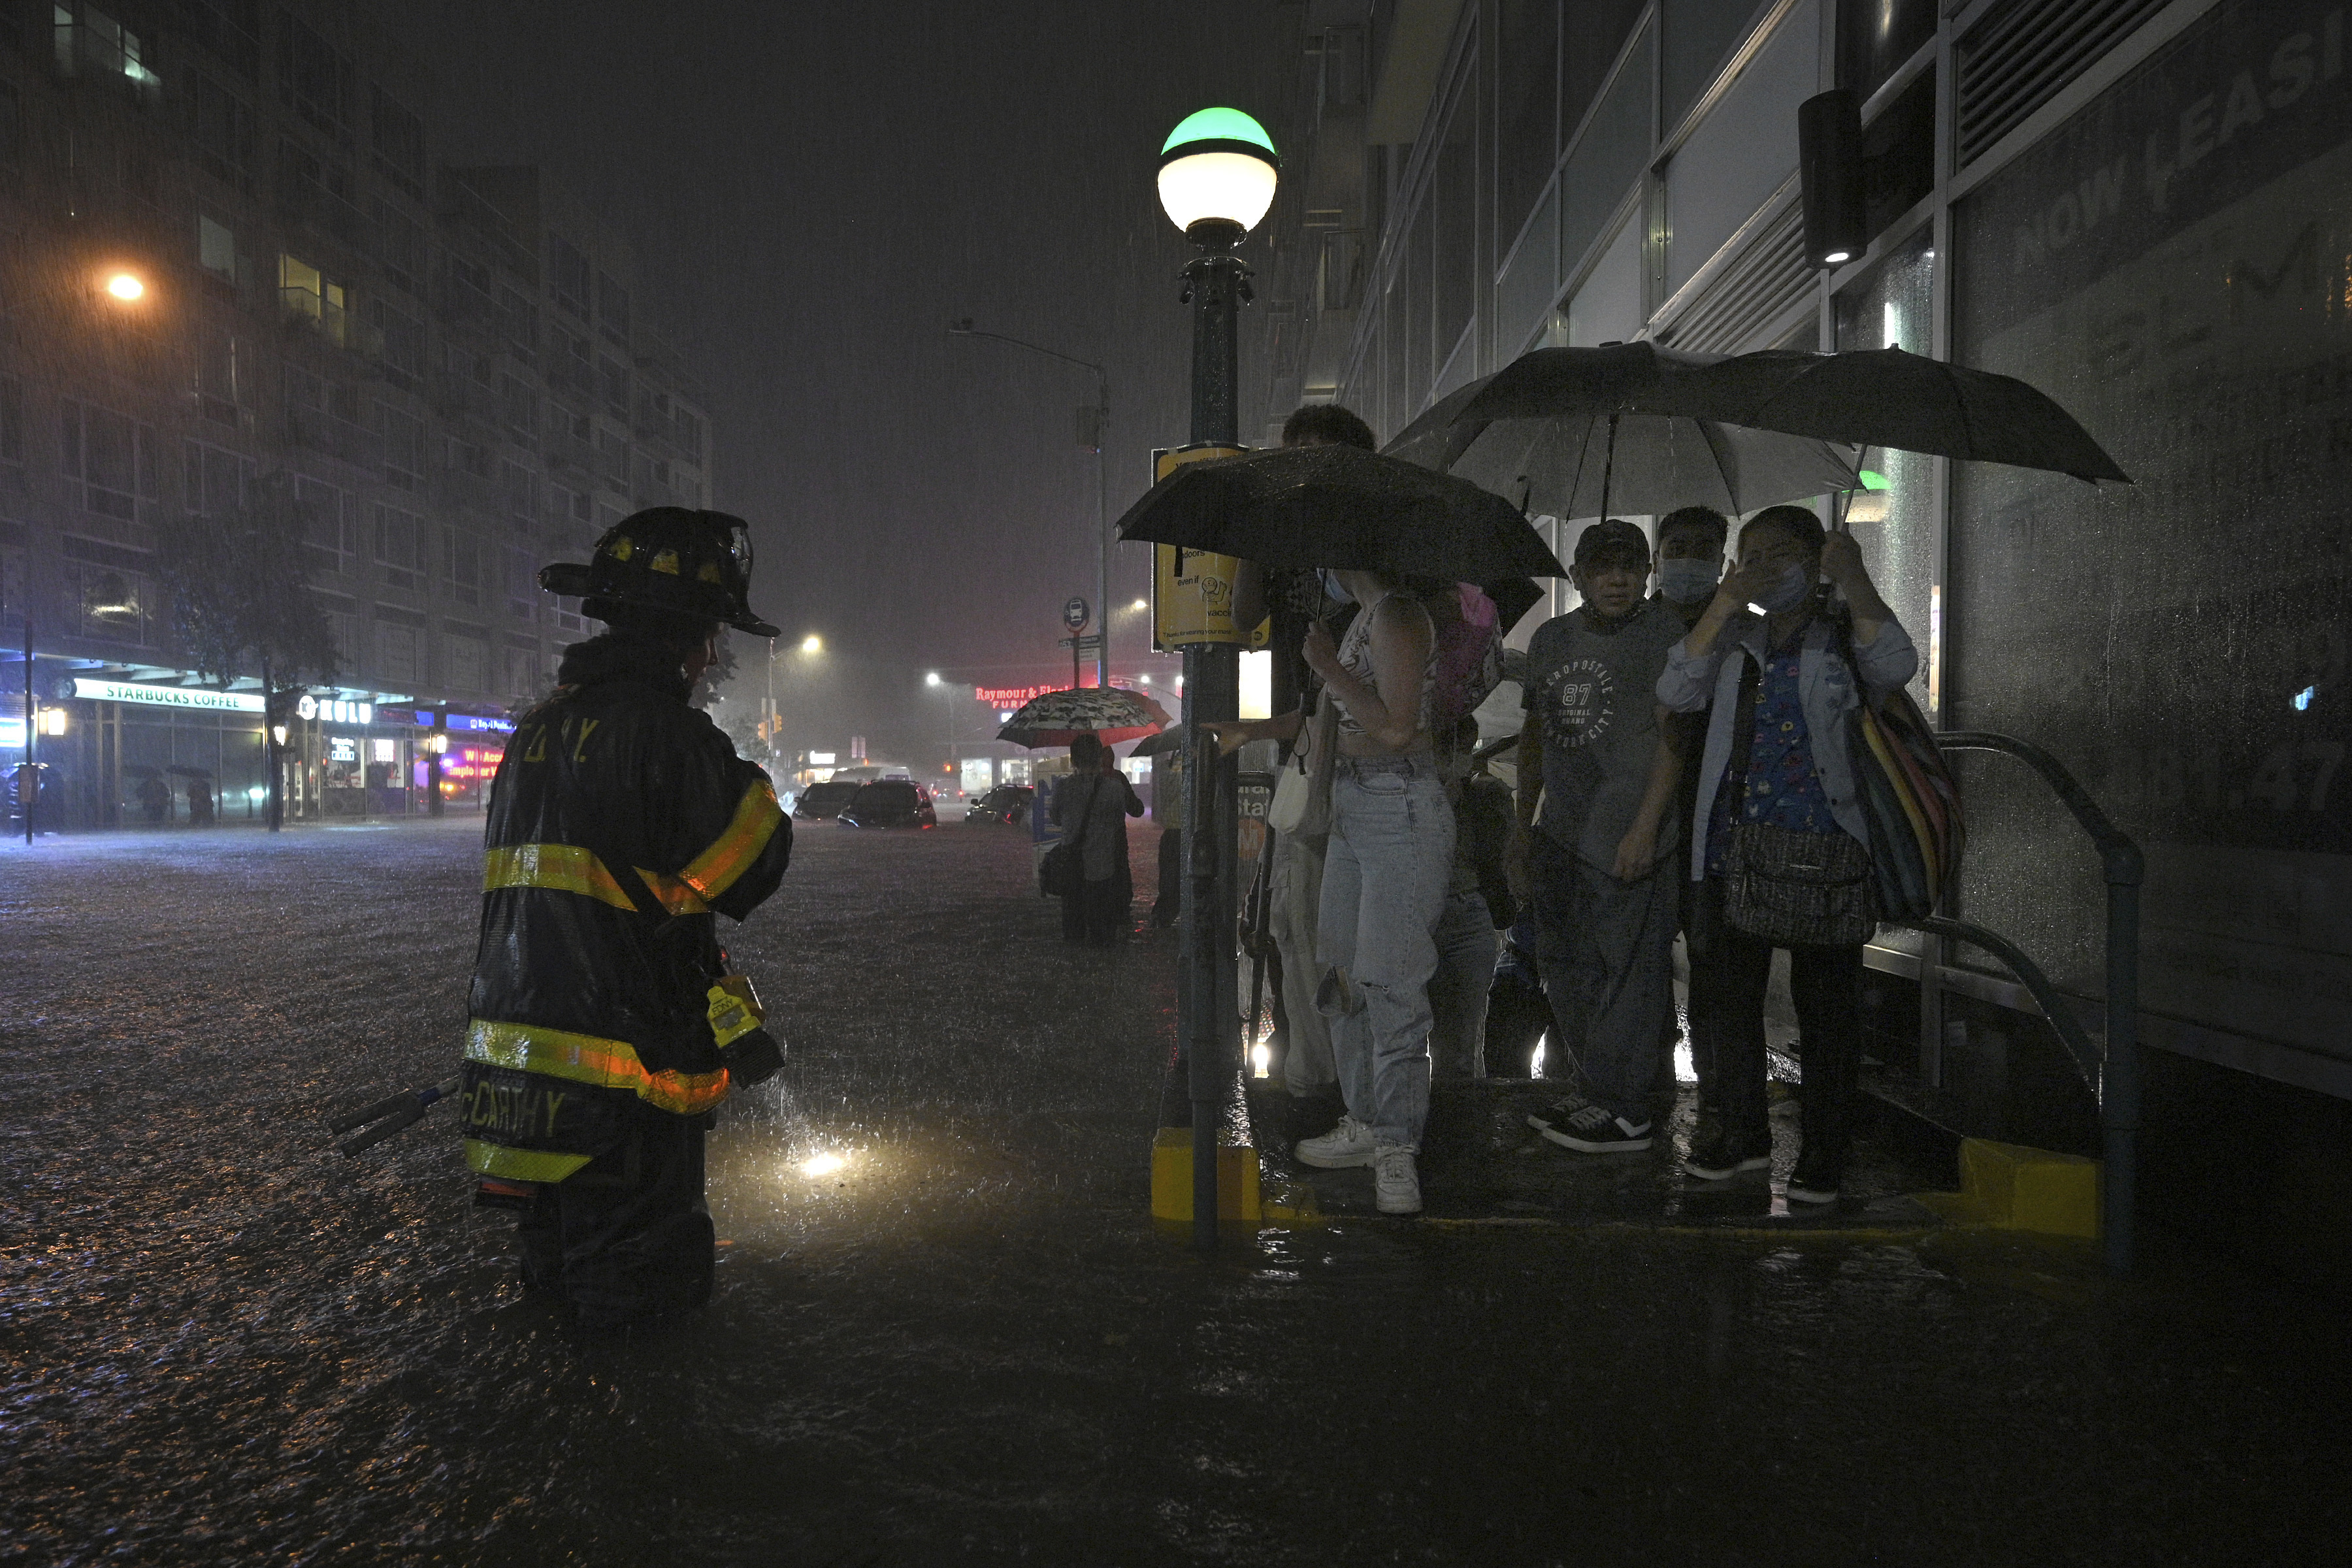 A firefighter directs people stranded at a subway entrance during flash flooding in New York on September 1.